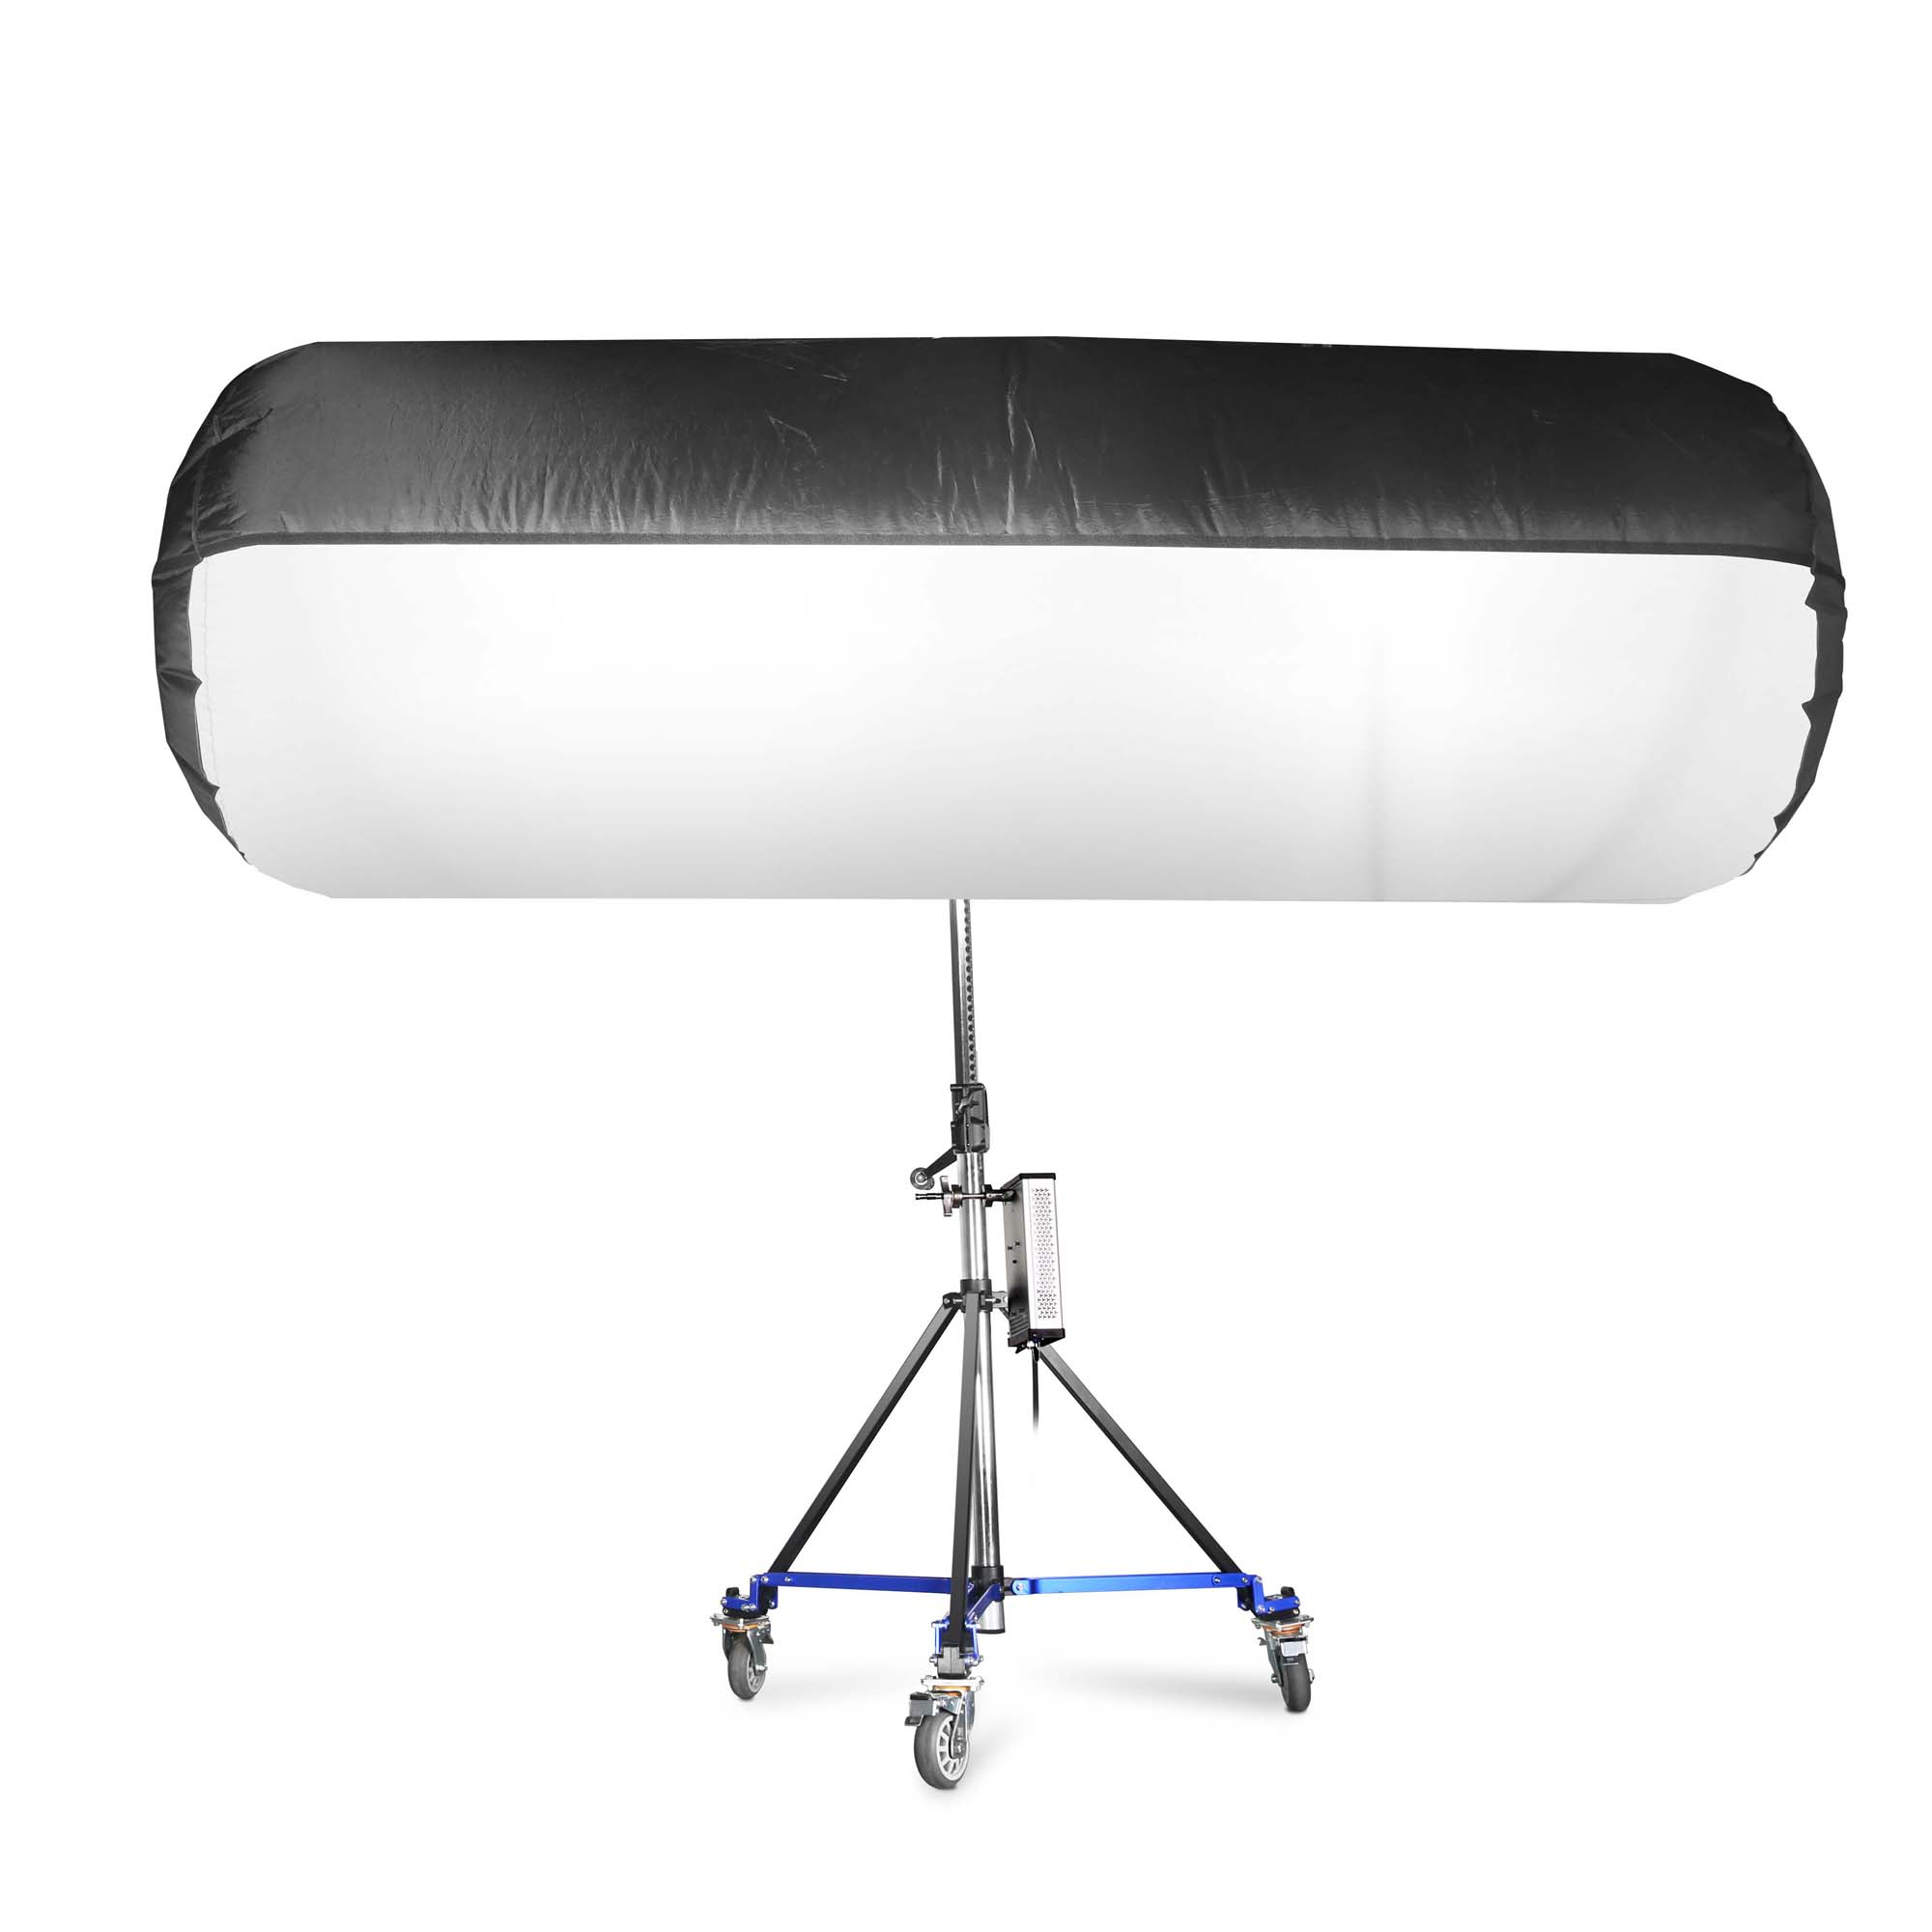 1000W Airlight on a stand